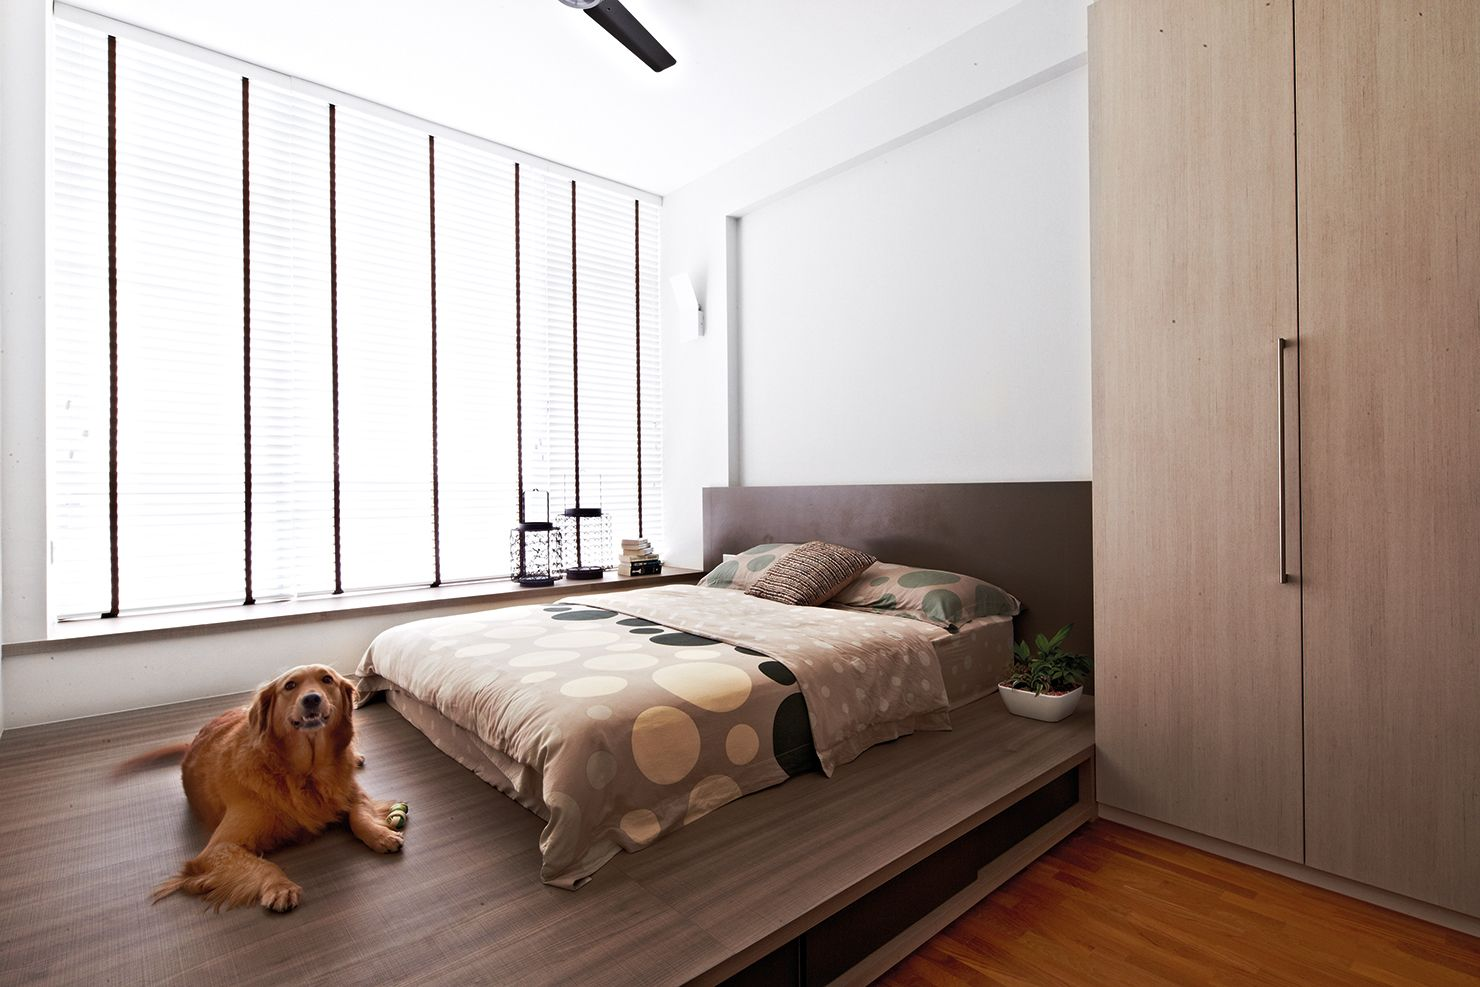 Home and decor hdb inspired home designs home decor - Bedroom with mattress on the floor ...